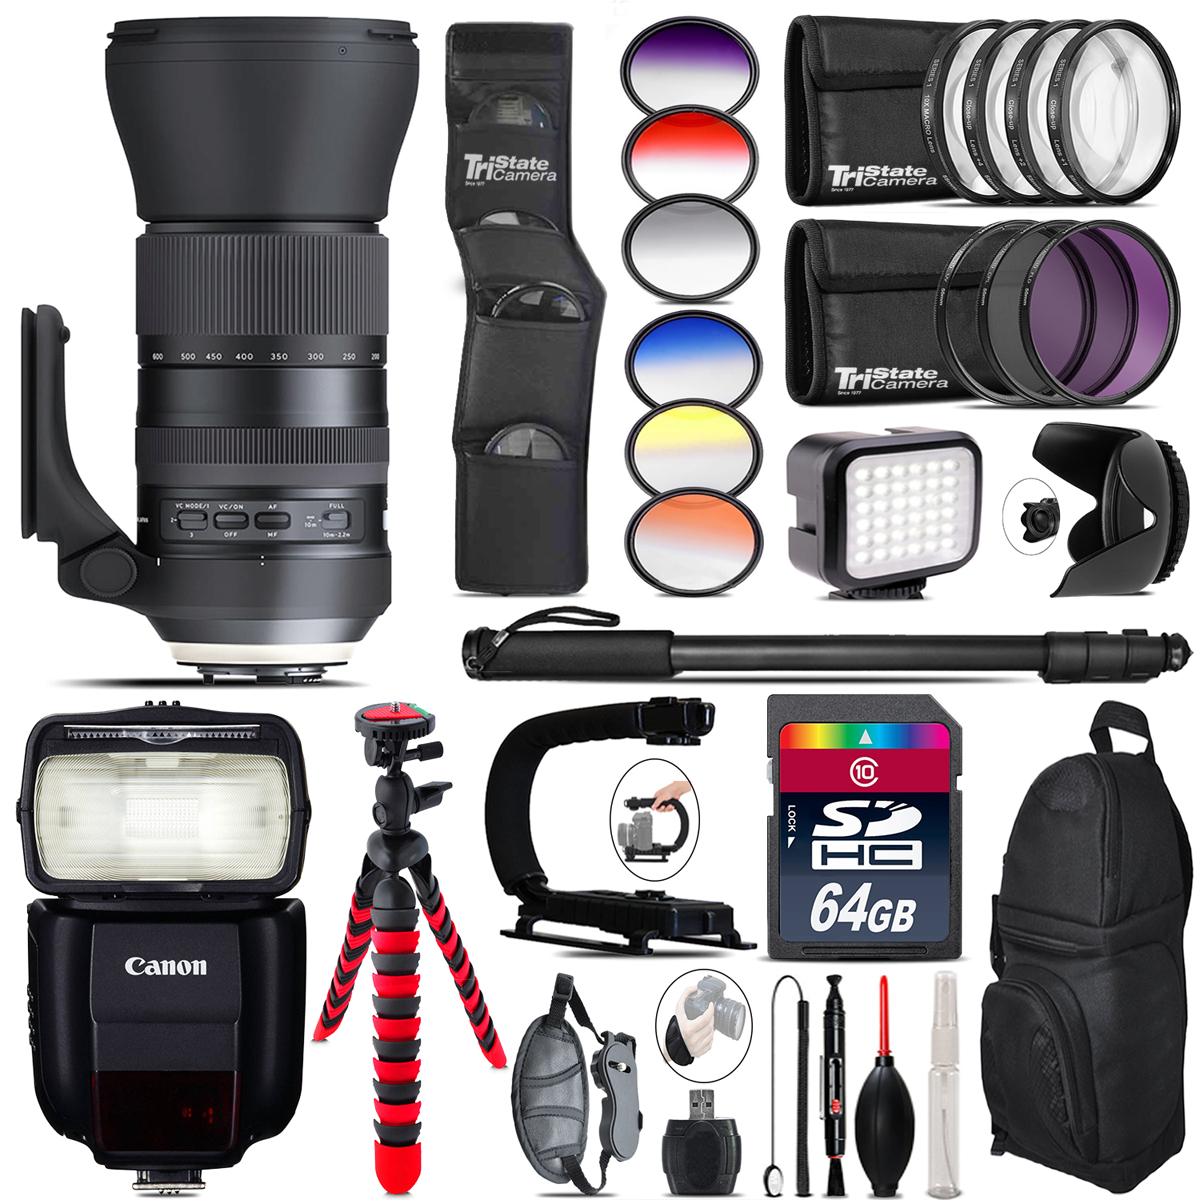 Tamron 150-600mm G2 for Canon + Speedlite 430EX + LED - 64GB Accessory Kit *FREE SHIPPING*